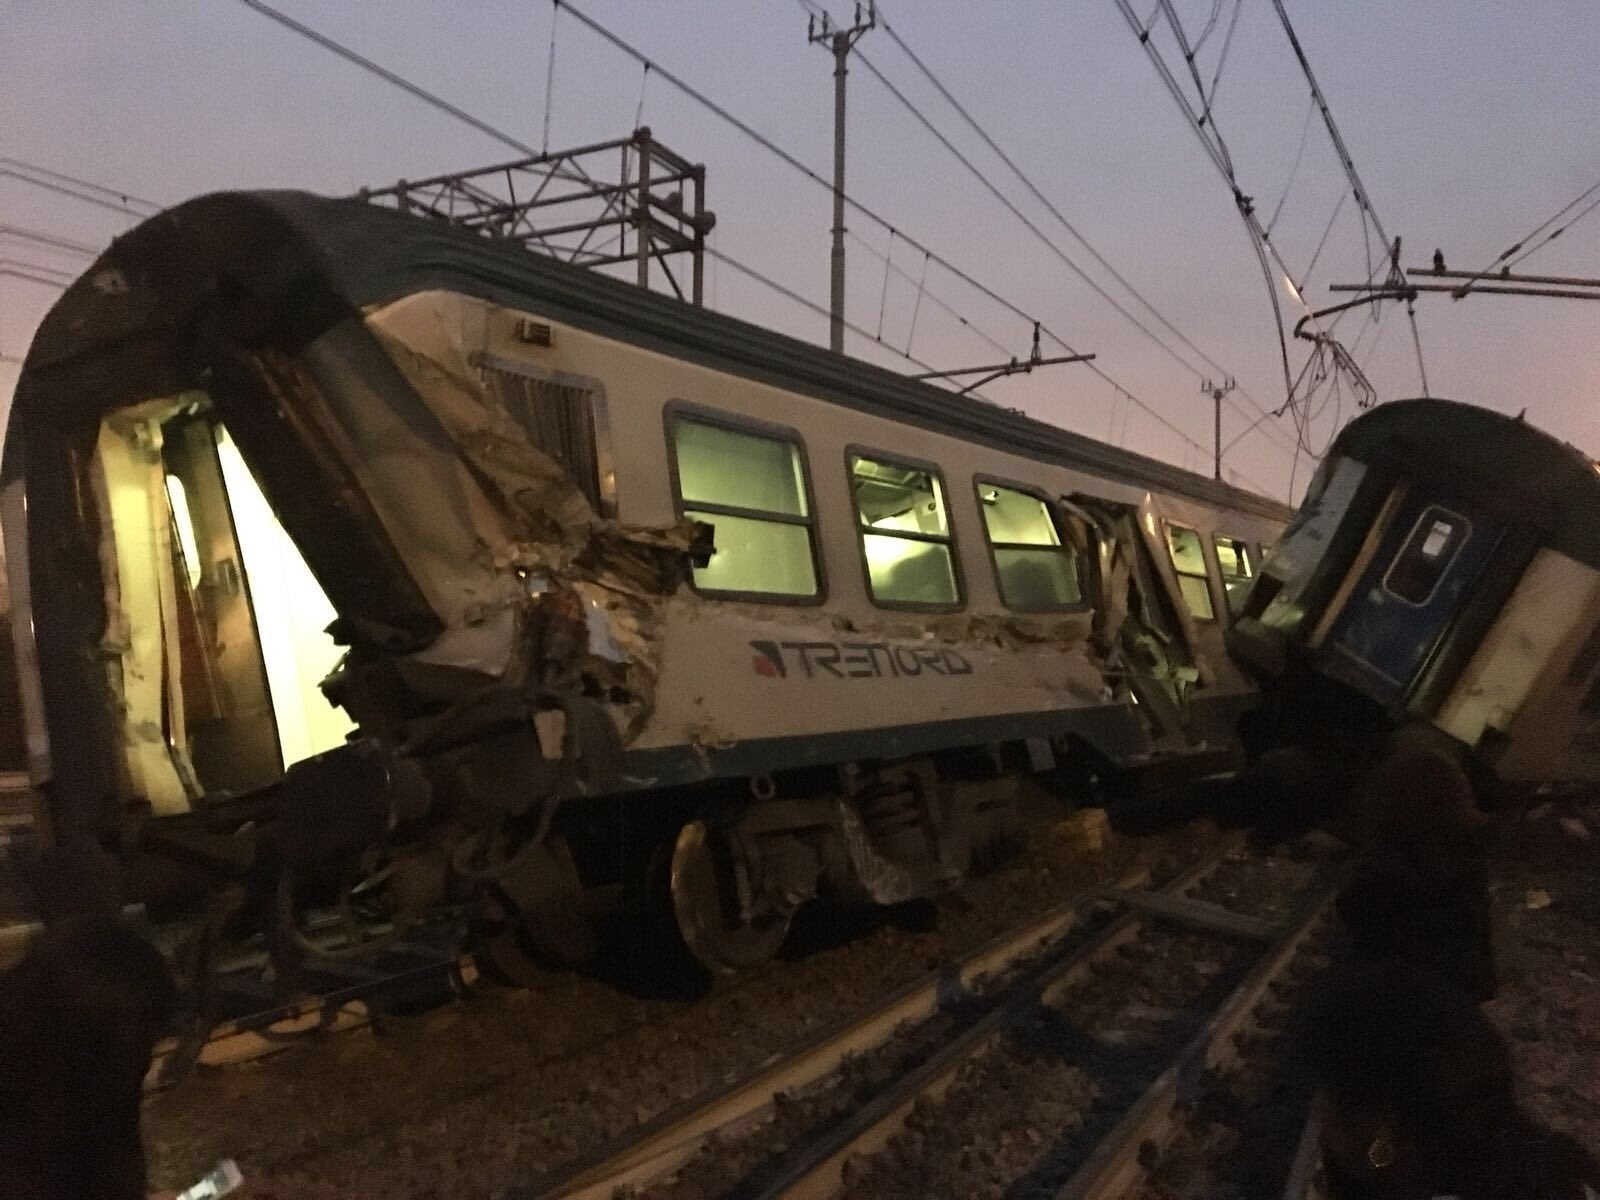 Two dead and dozens injured as train derails in Italy